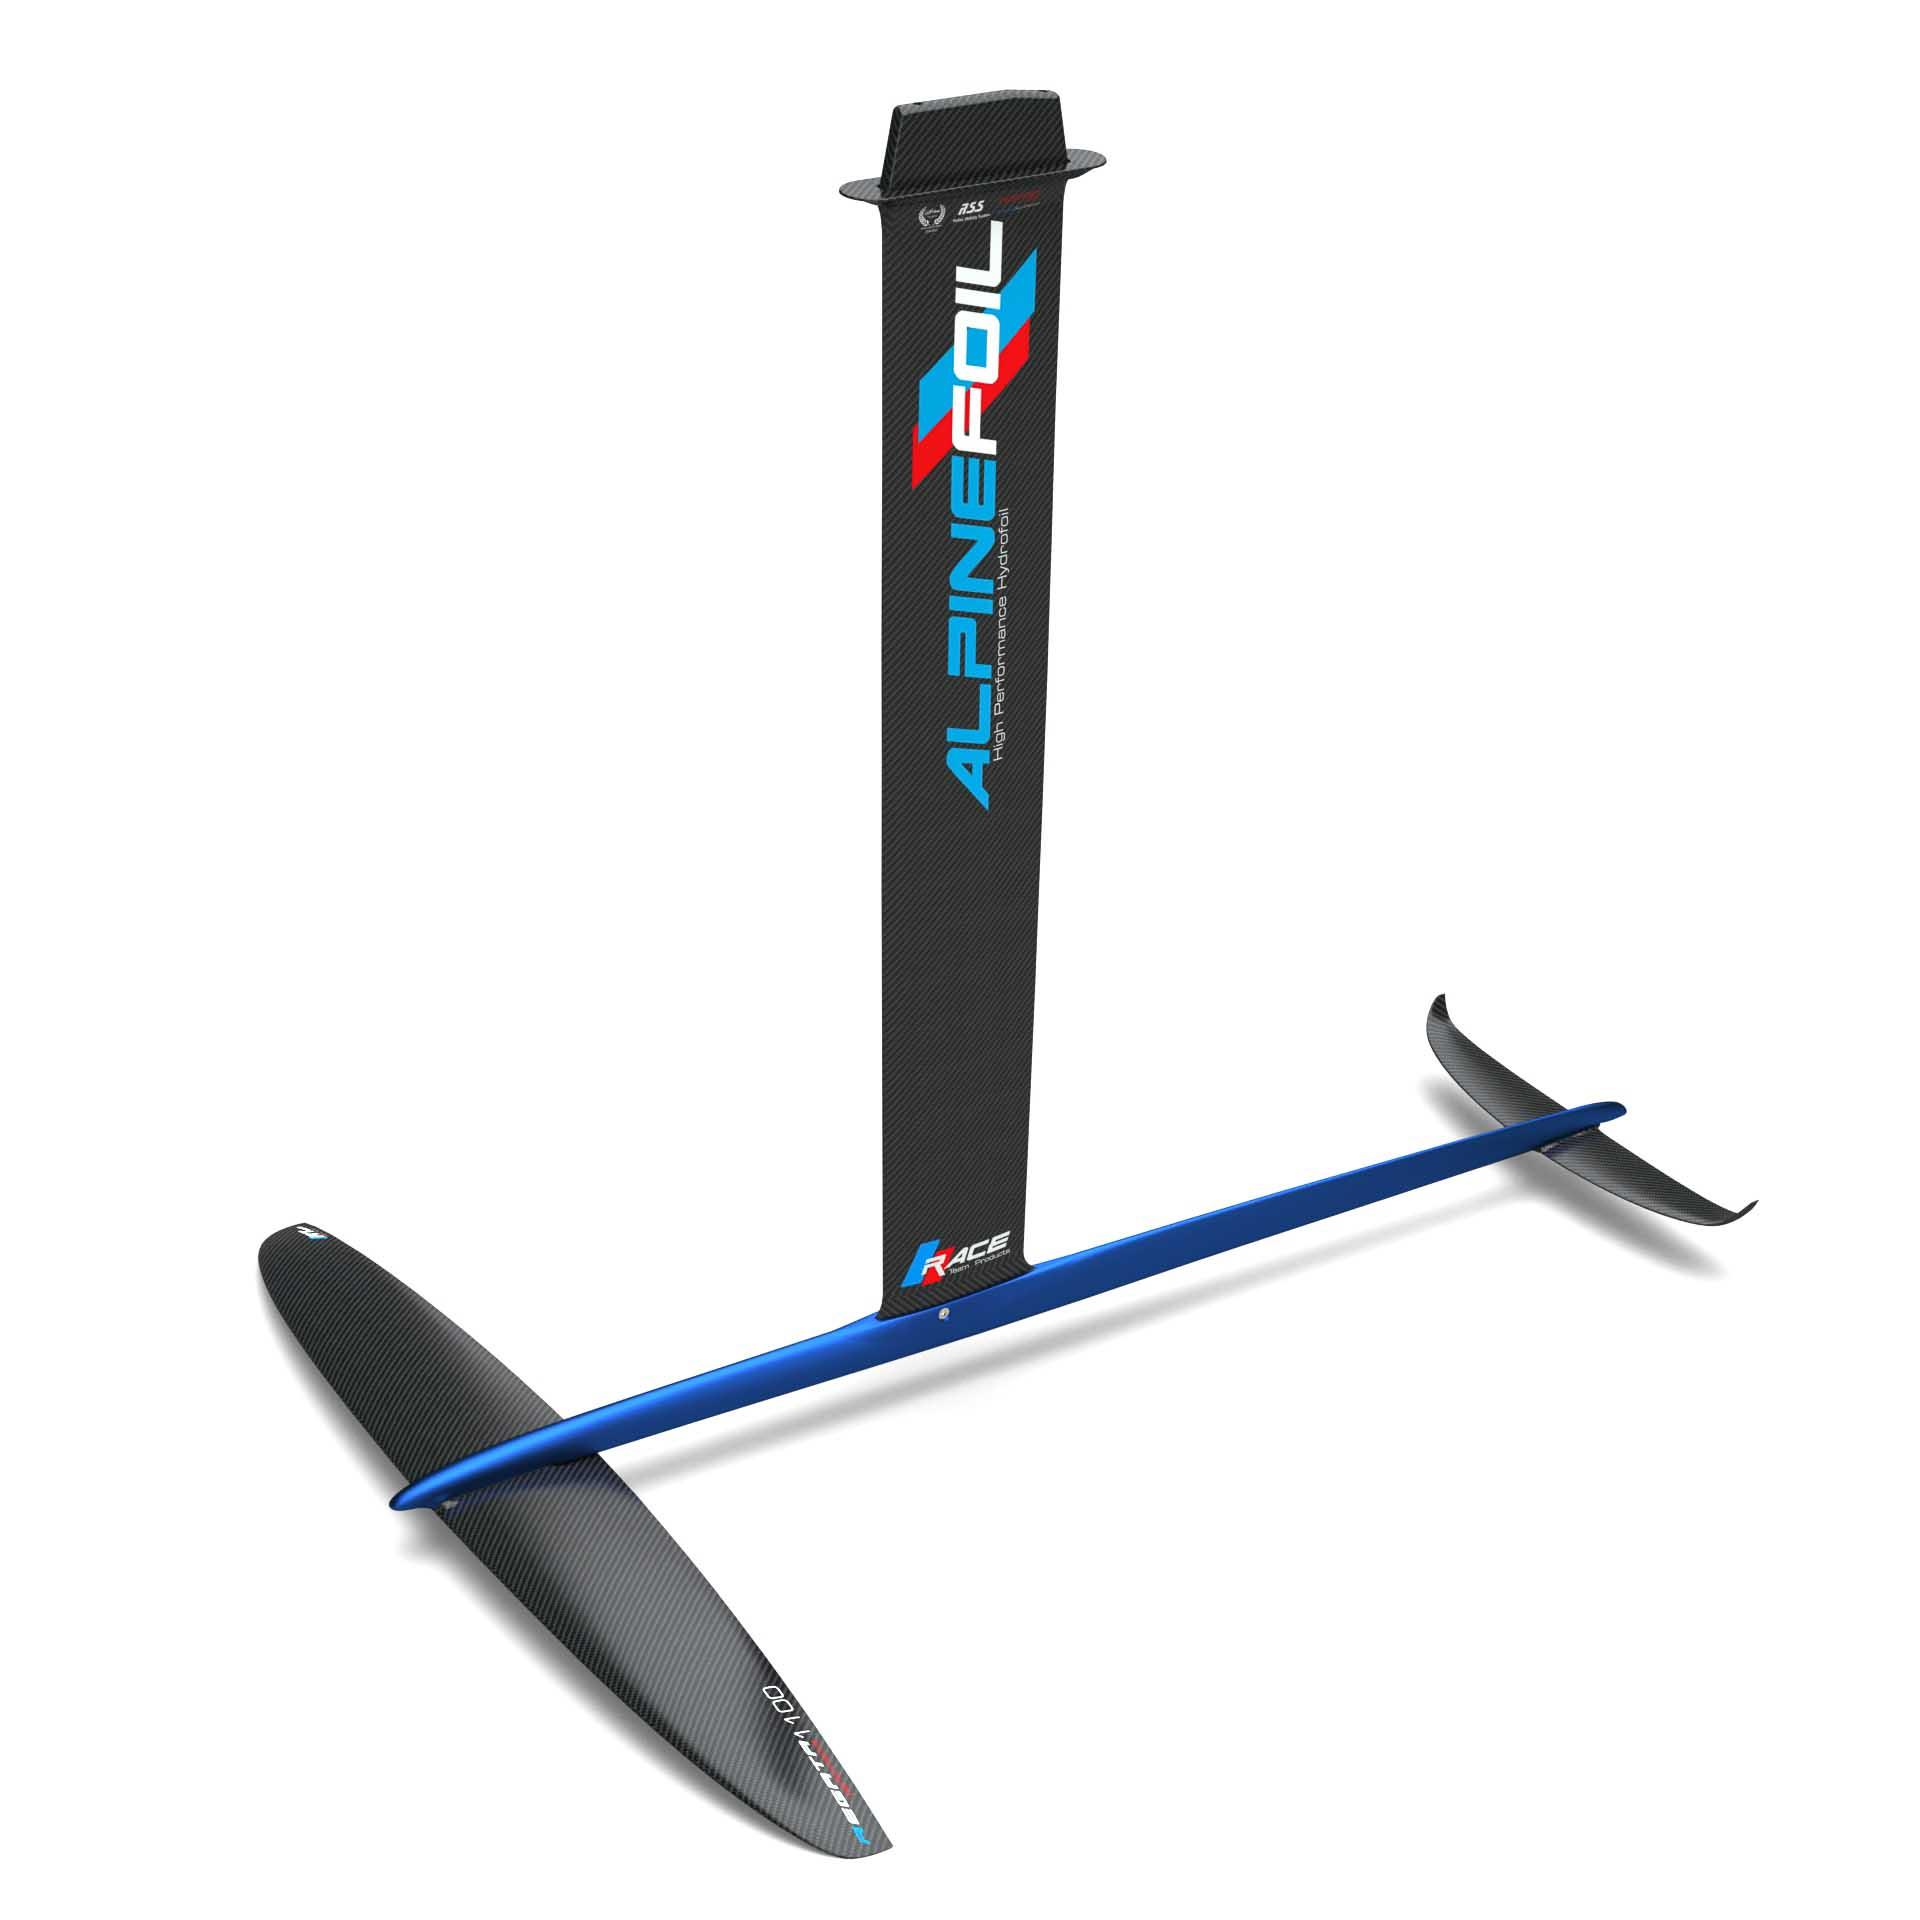 Windfoil alpinefoil a1 race carbon regatta 1100 3